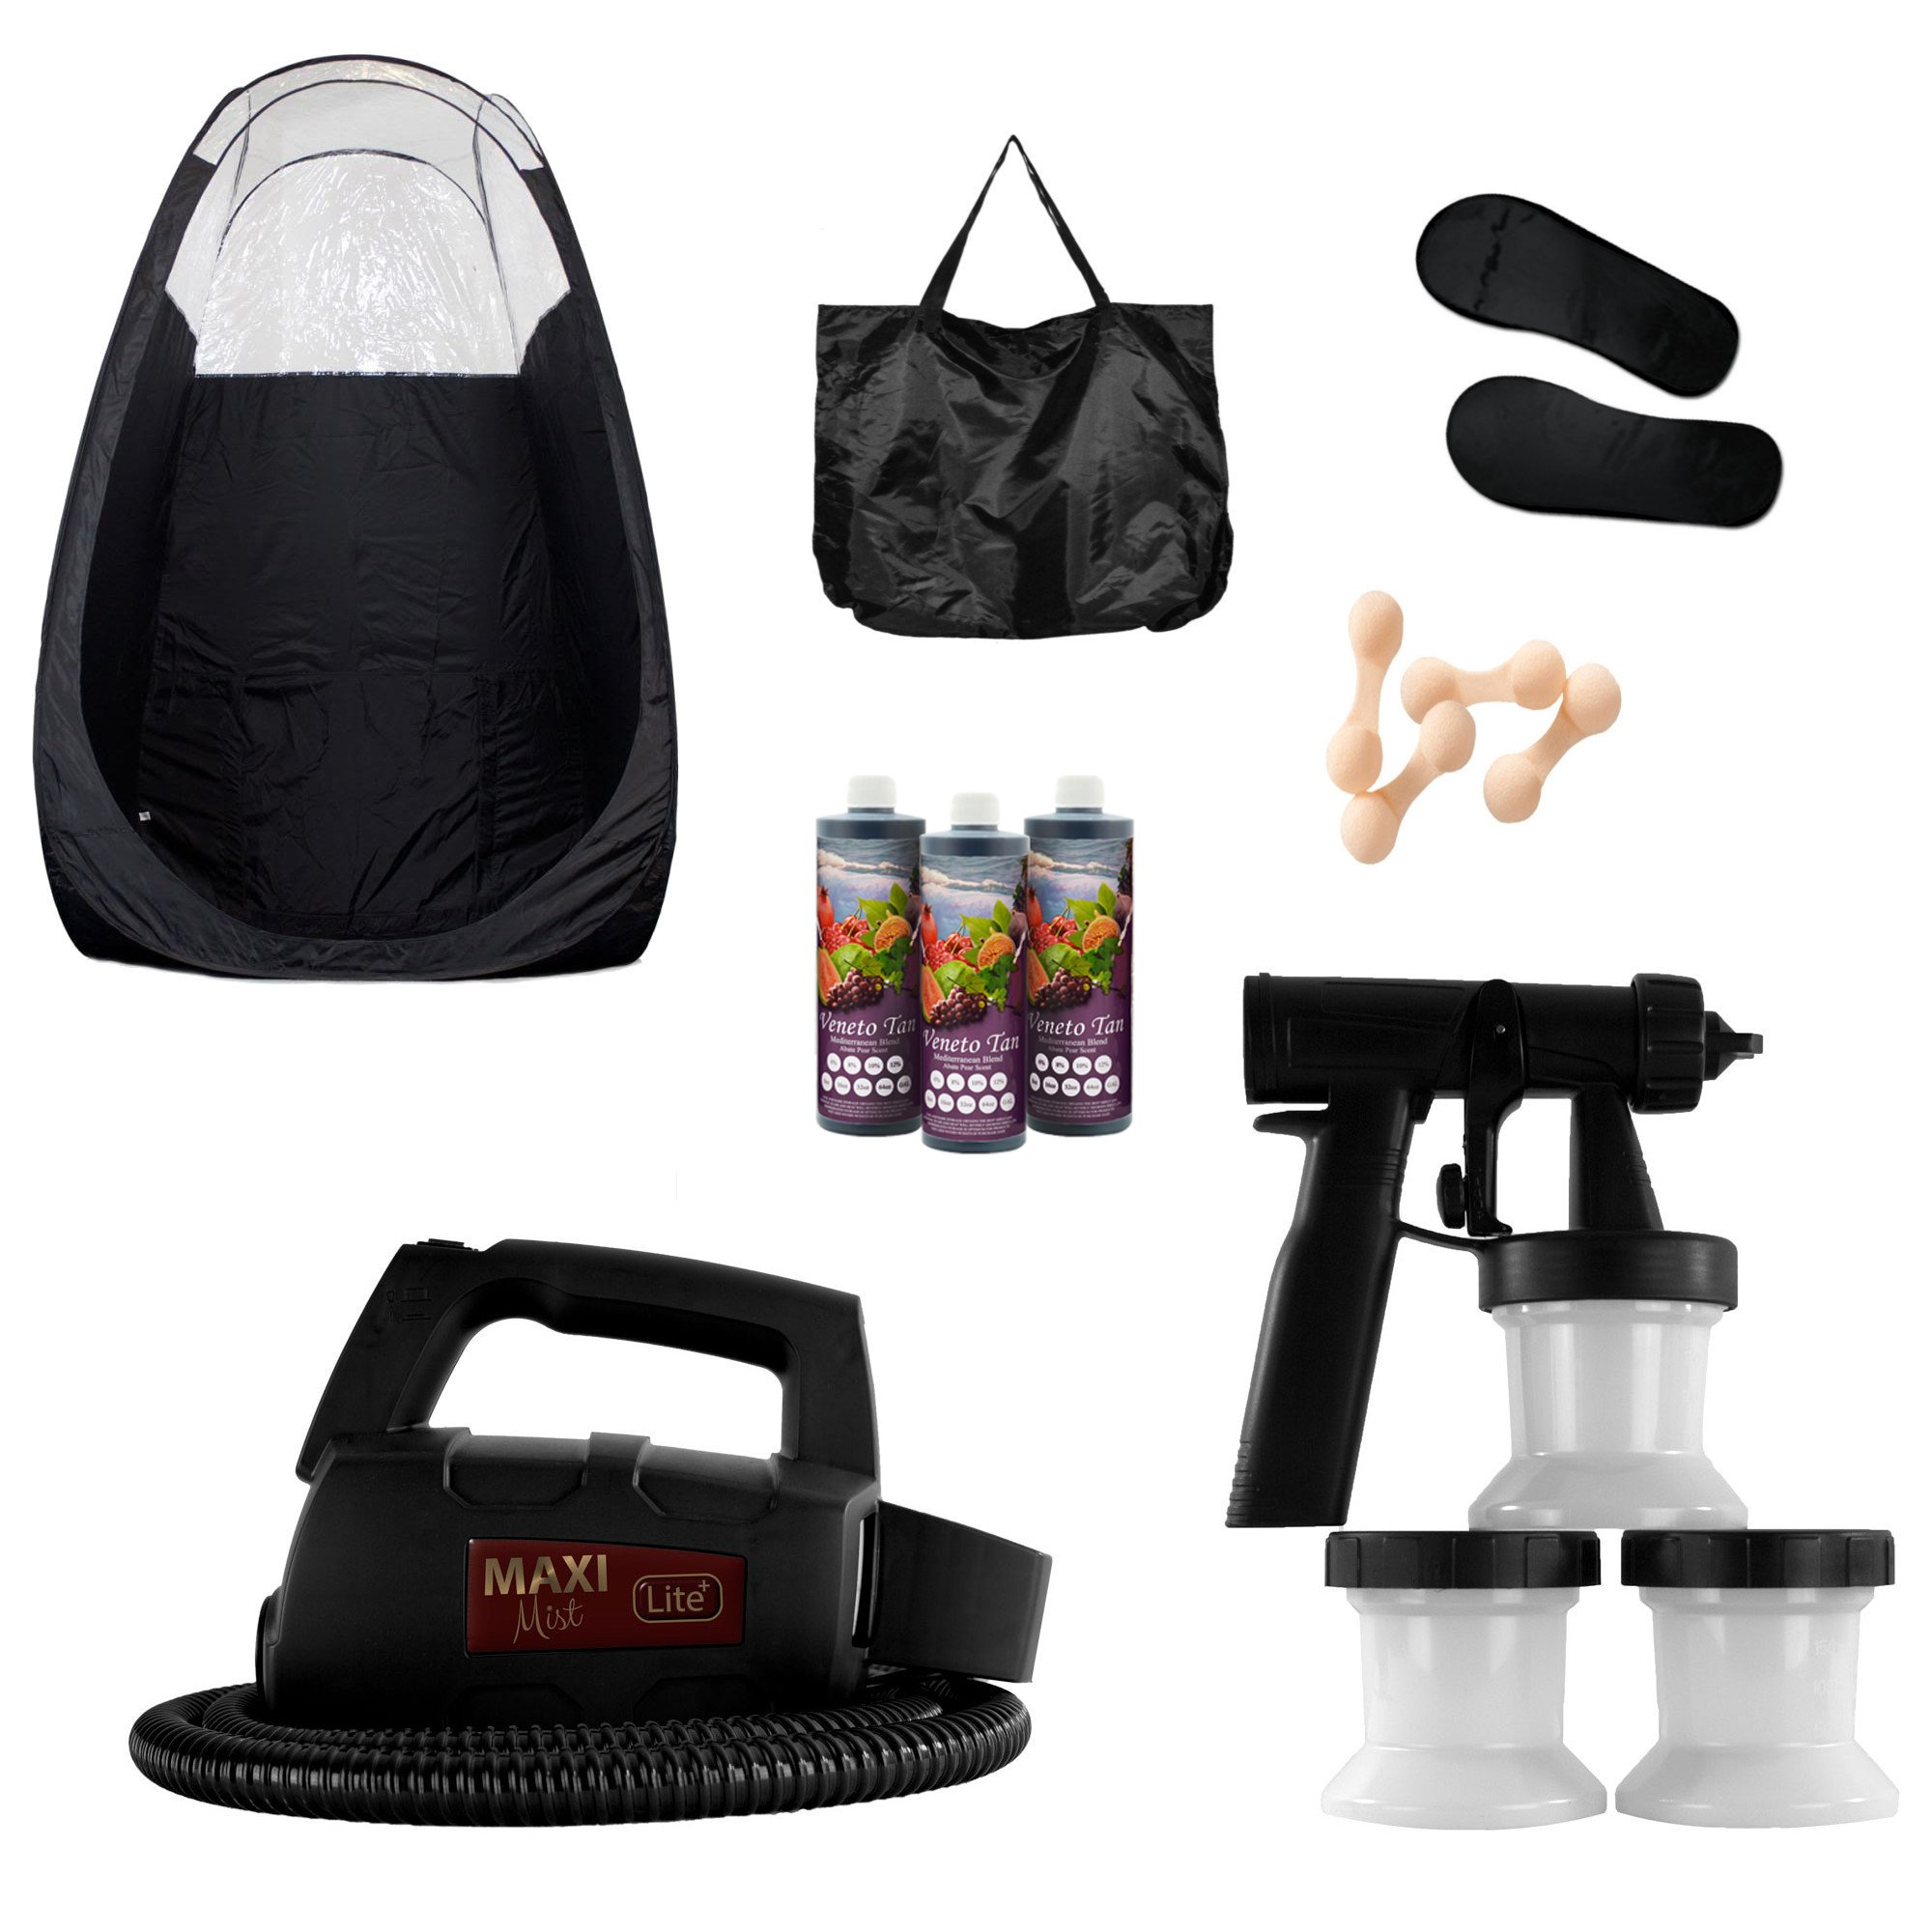 MaxiMist Lite Plus HVLP Sunless Spray Tan KIT w Tent, 25 pr foot protecters, 25 nose filters (Black Tent Black foot sole covers) by MaxiMist (Image #2)